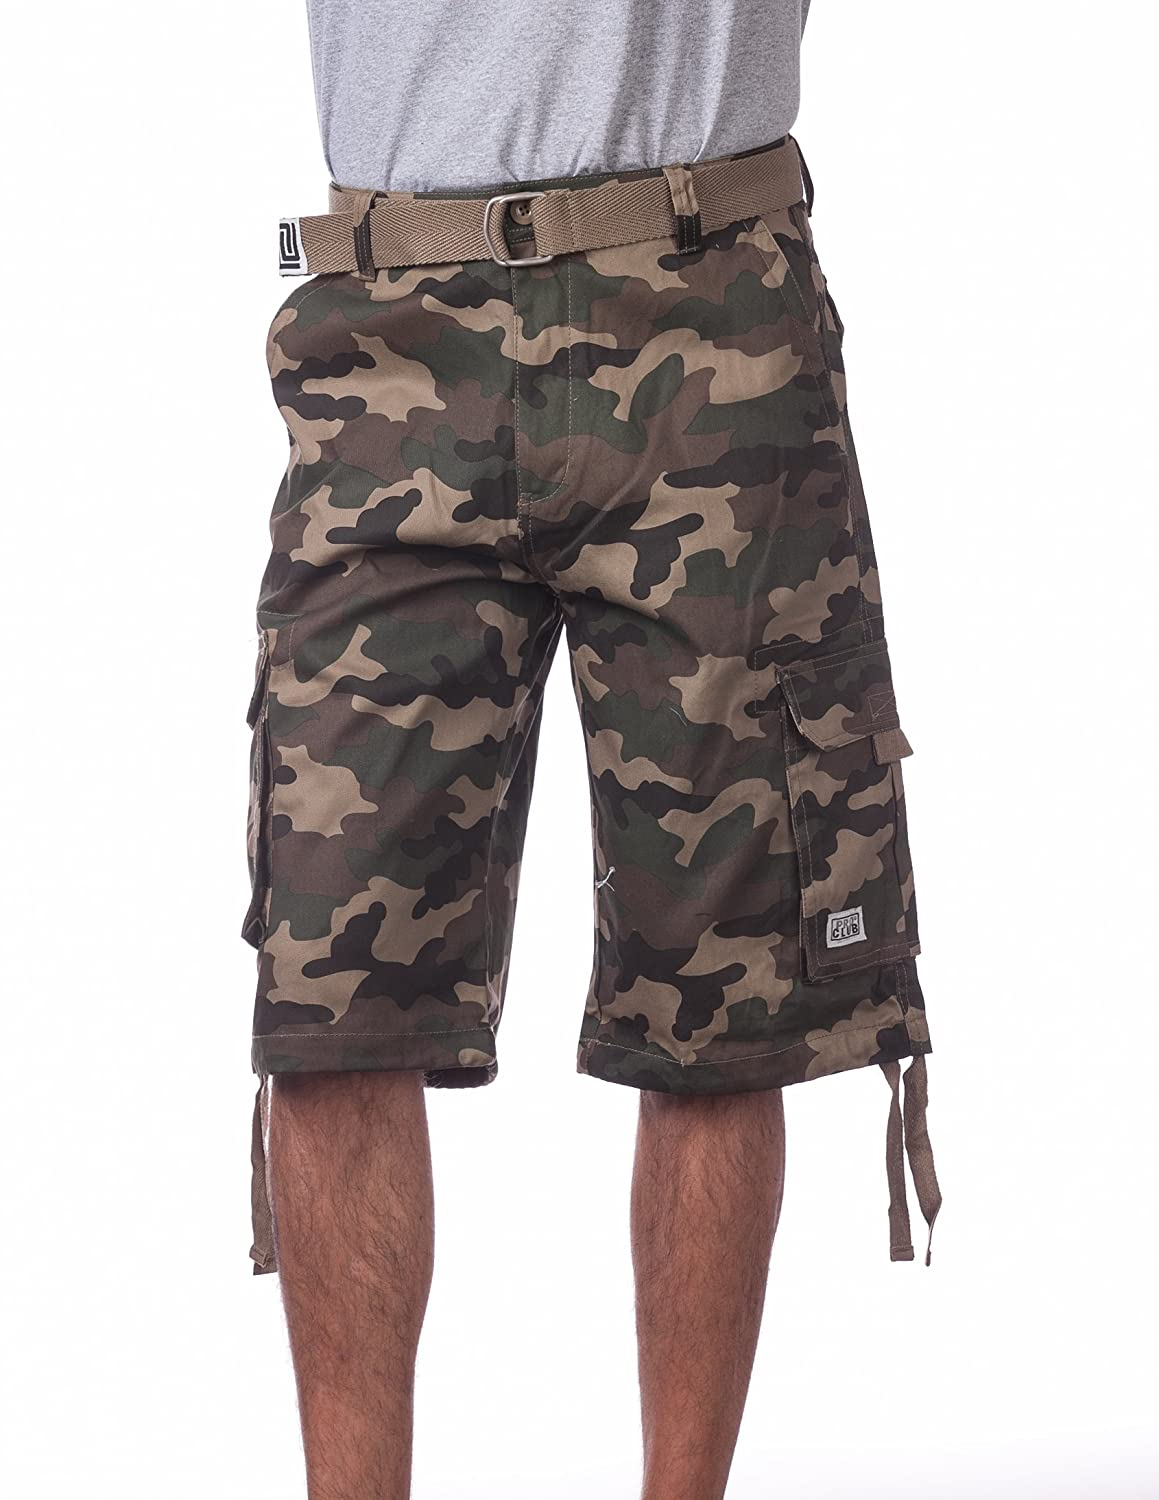 Pro Club Men's Cotton Twill Cargo Shorts with Belt - Regular and Big & Tall Sizes 166